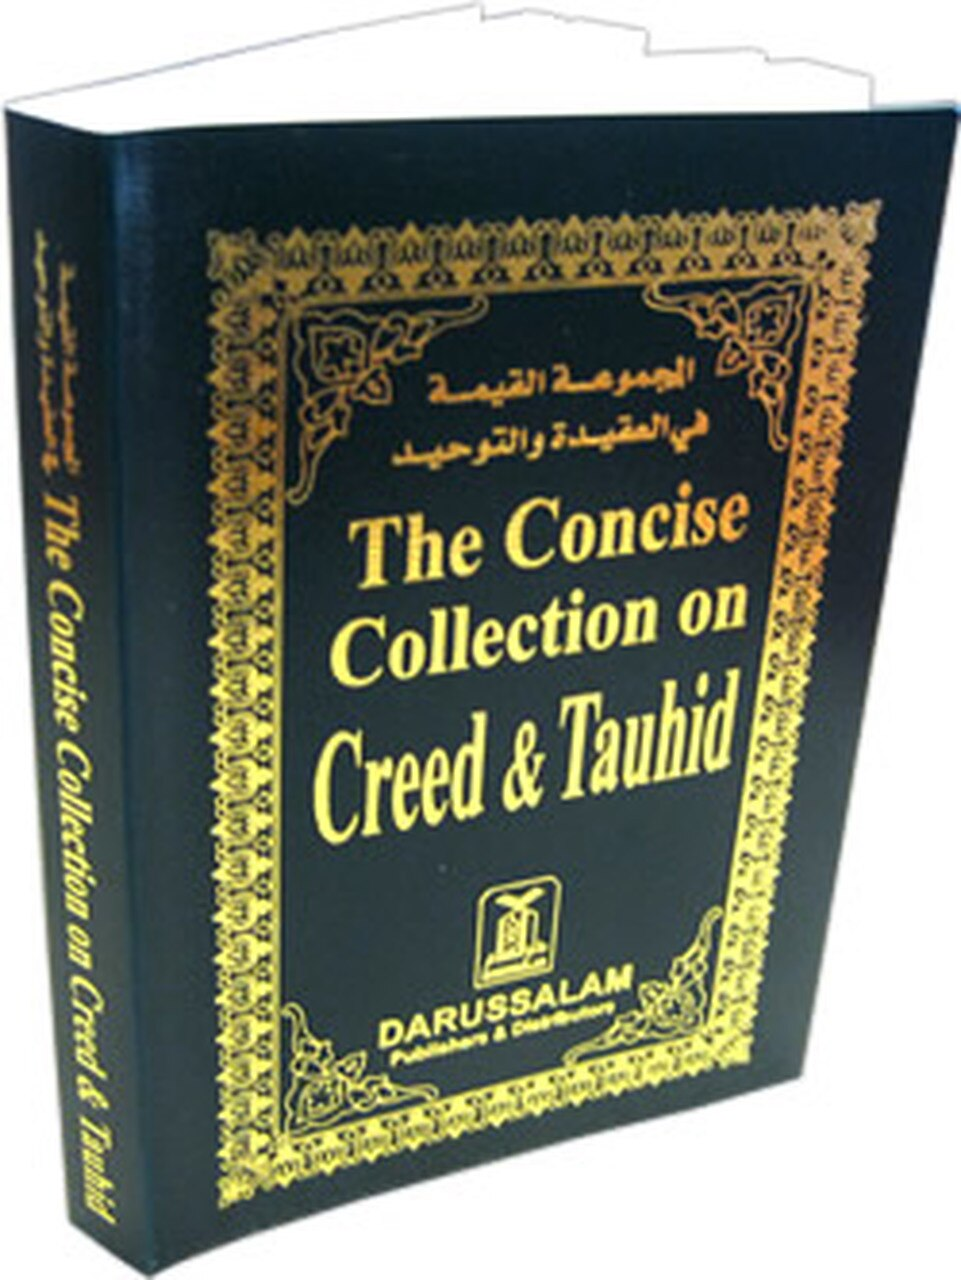 Concise Collection On Creed And Tauhid (Pocket size)